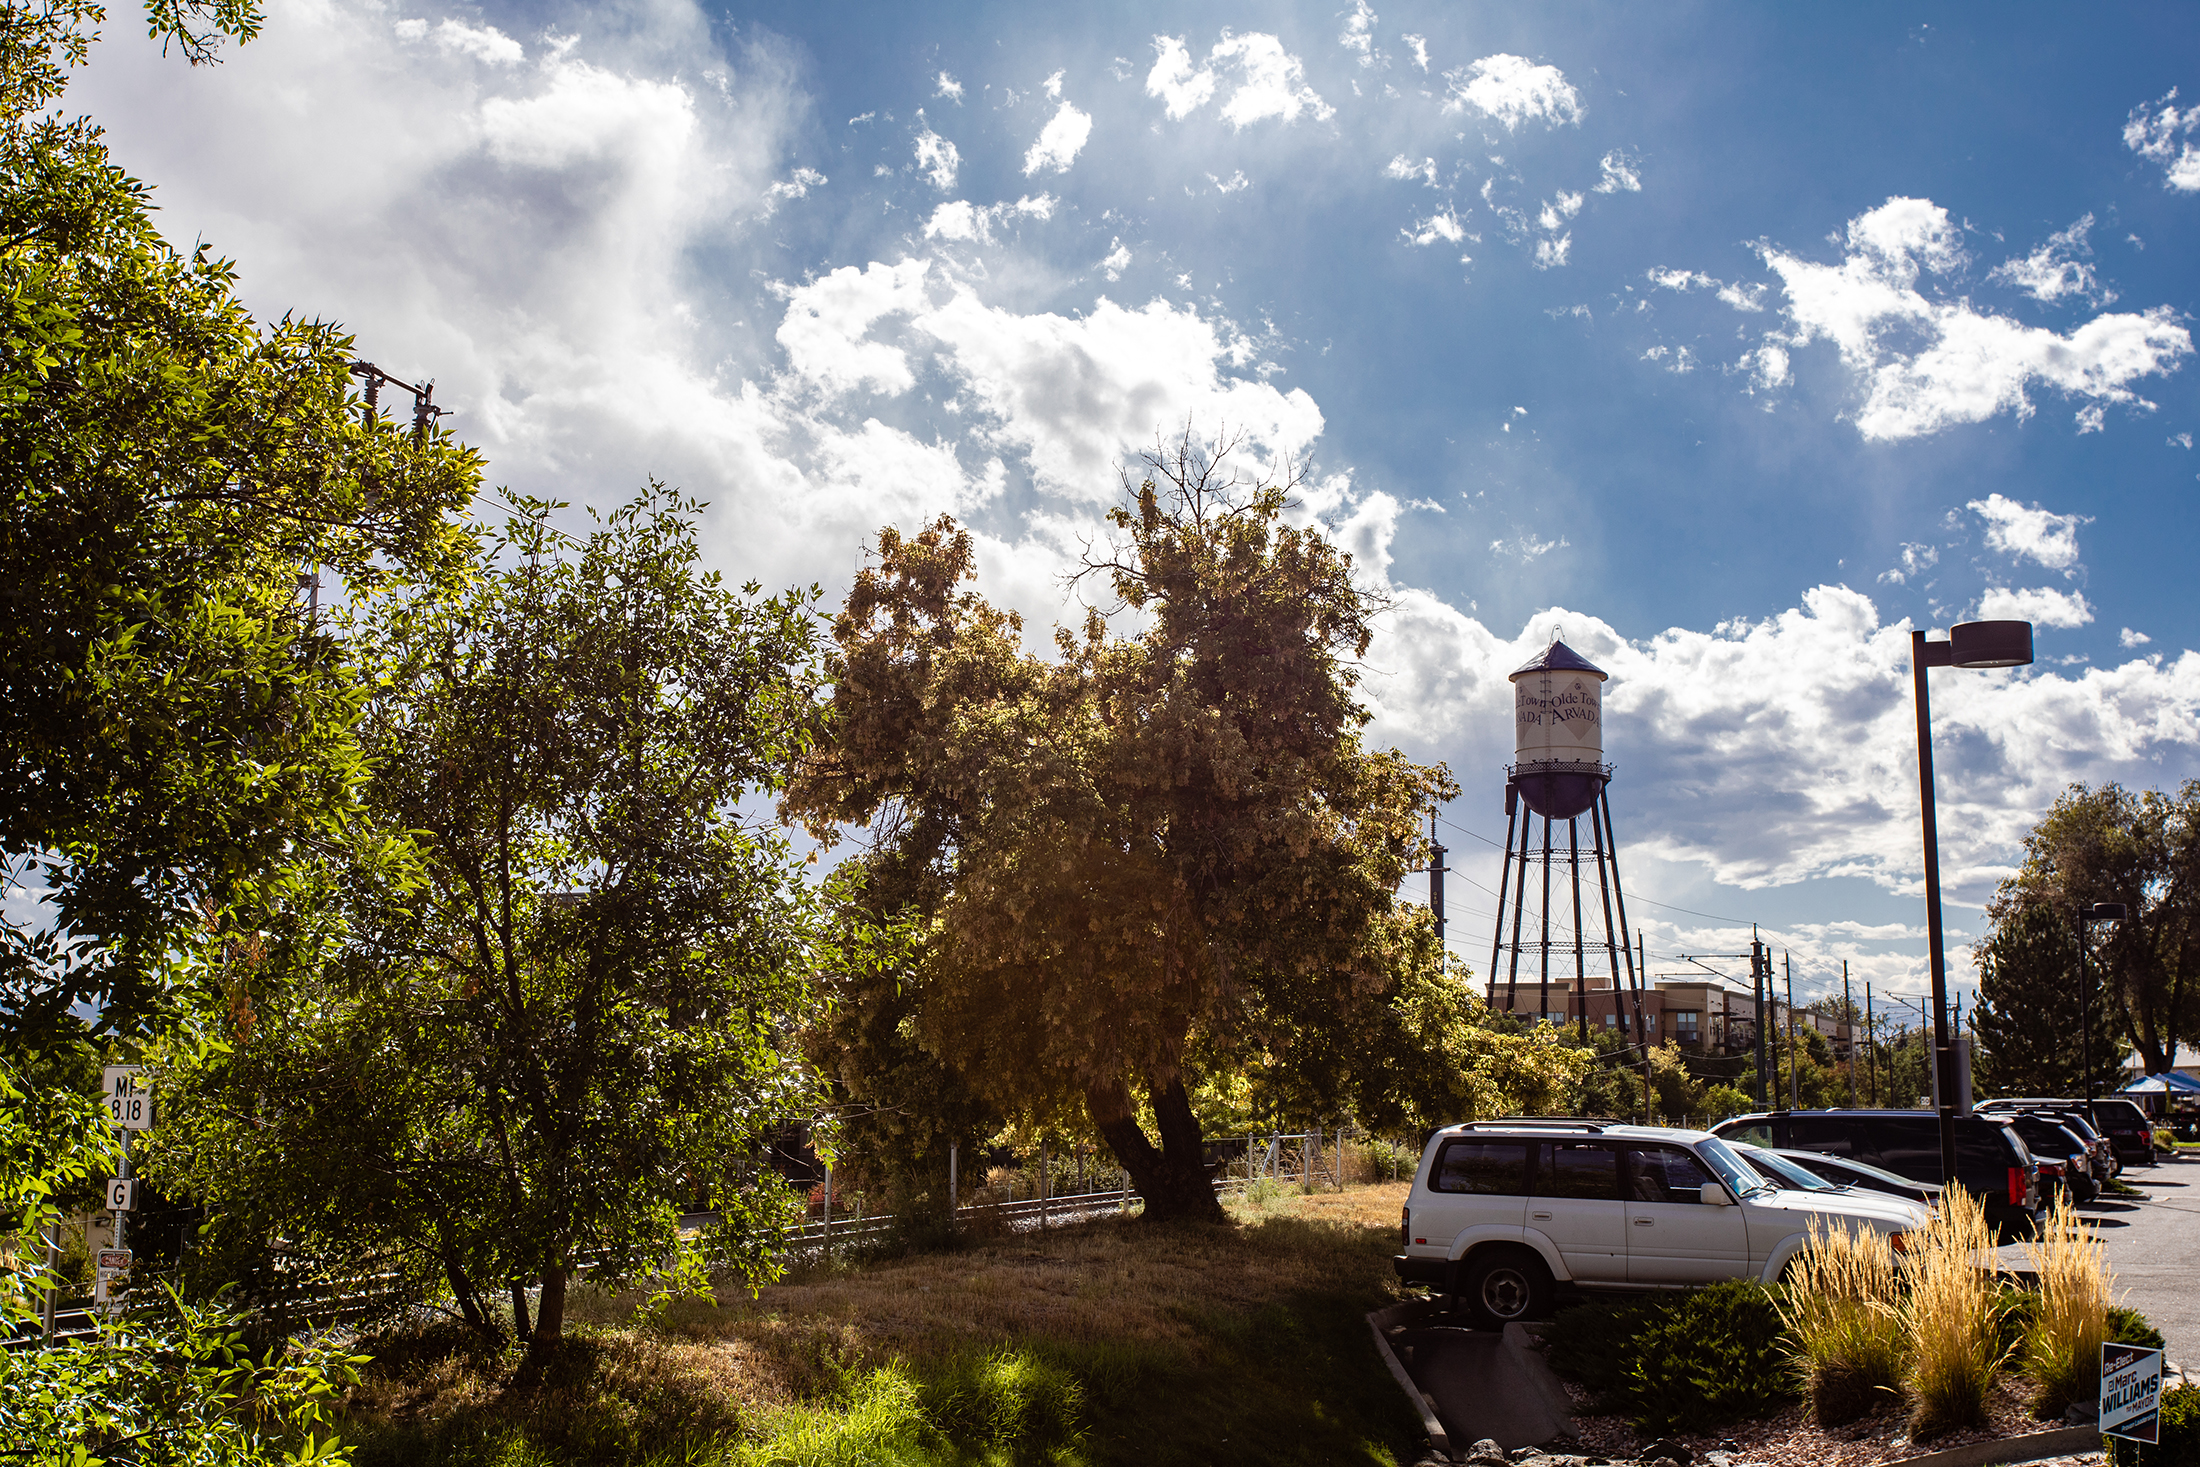 Olde Town Arvada, a place to call home